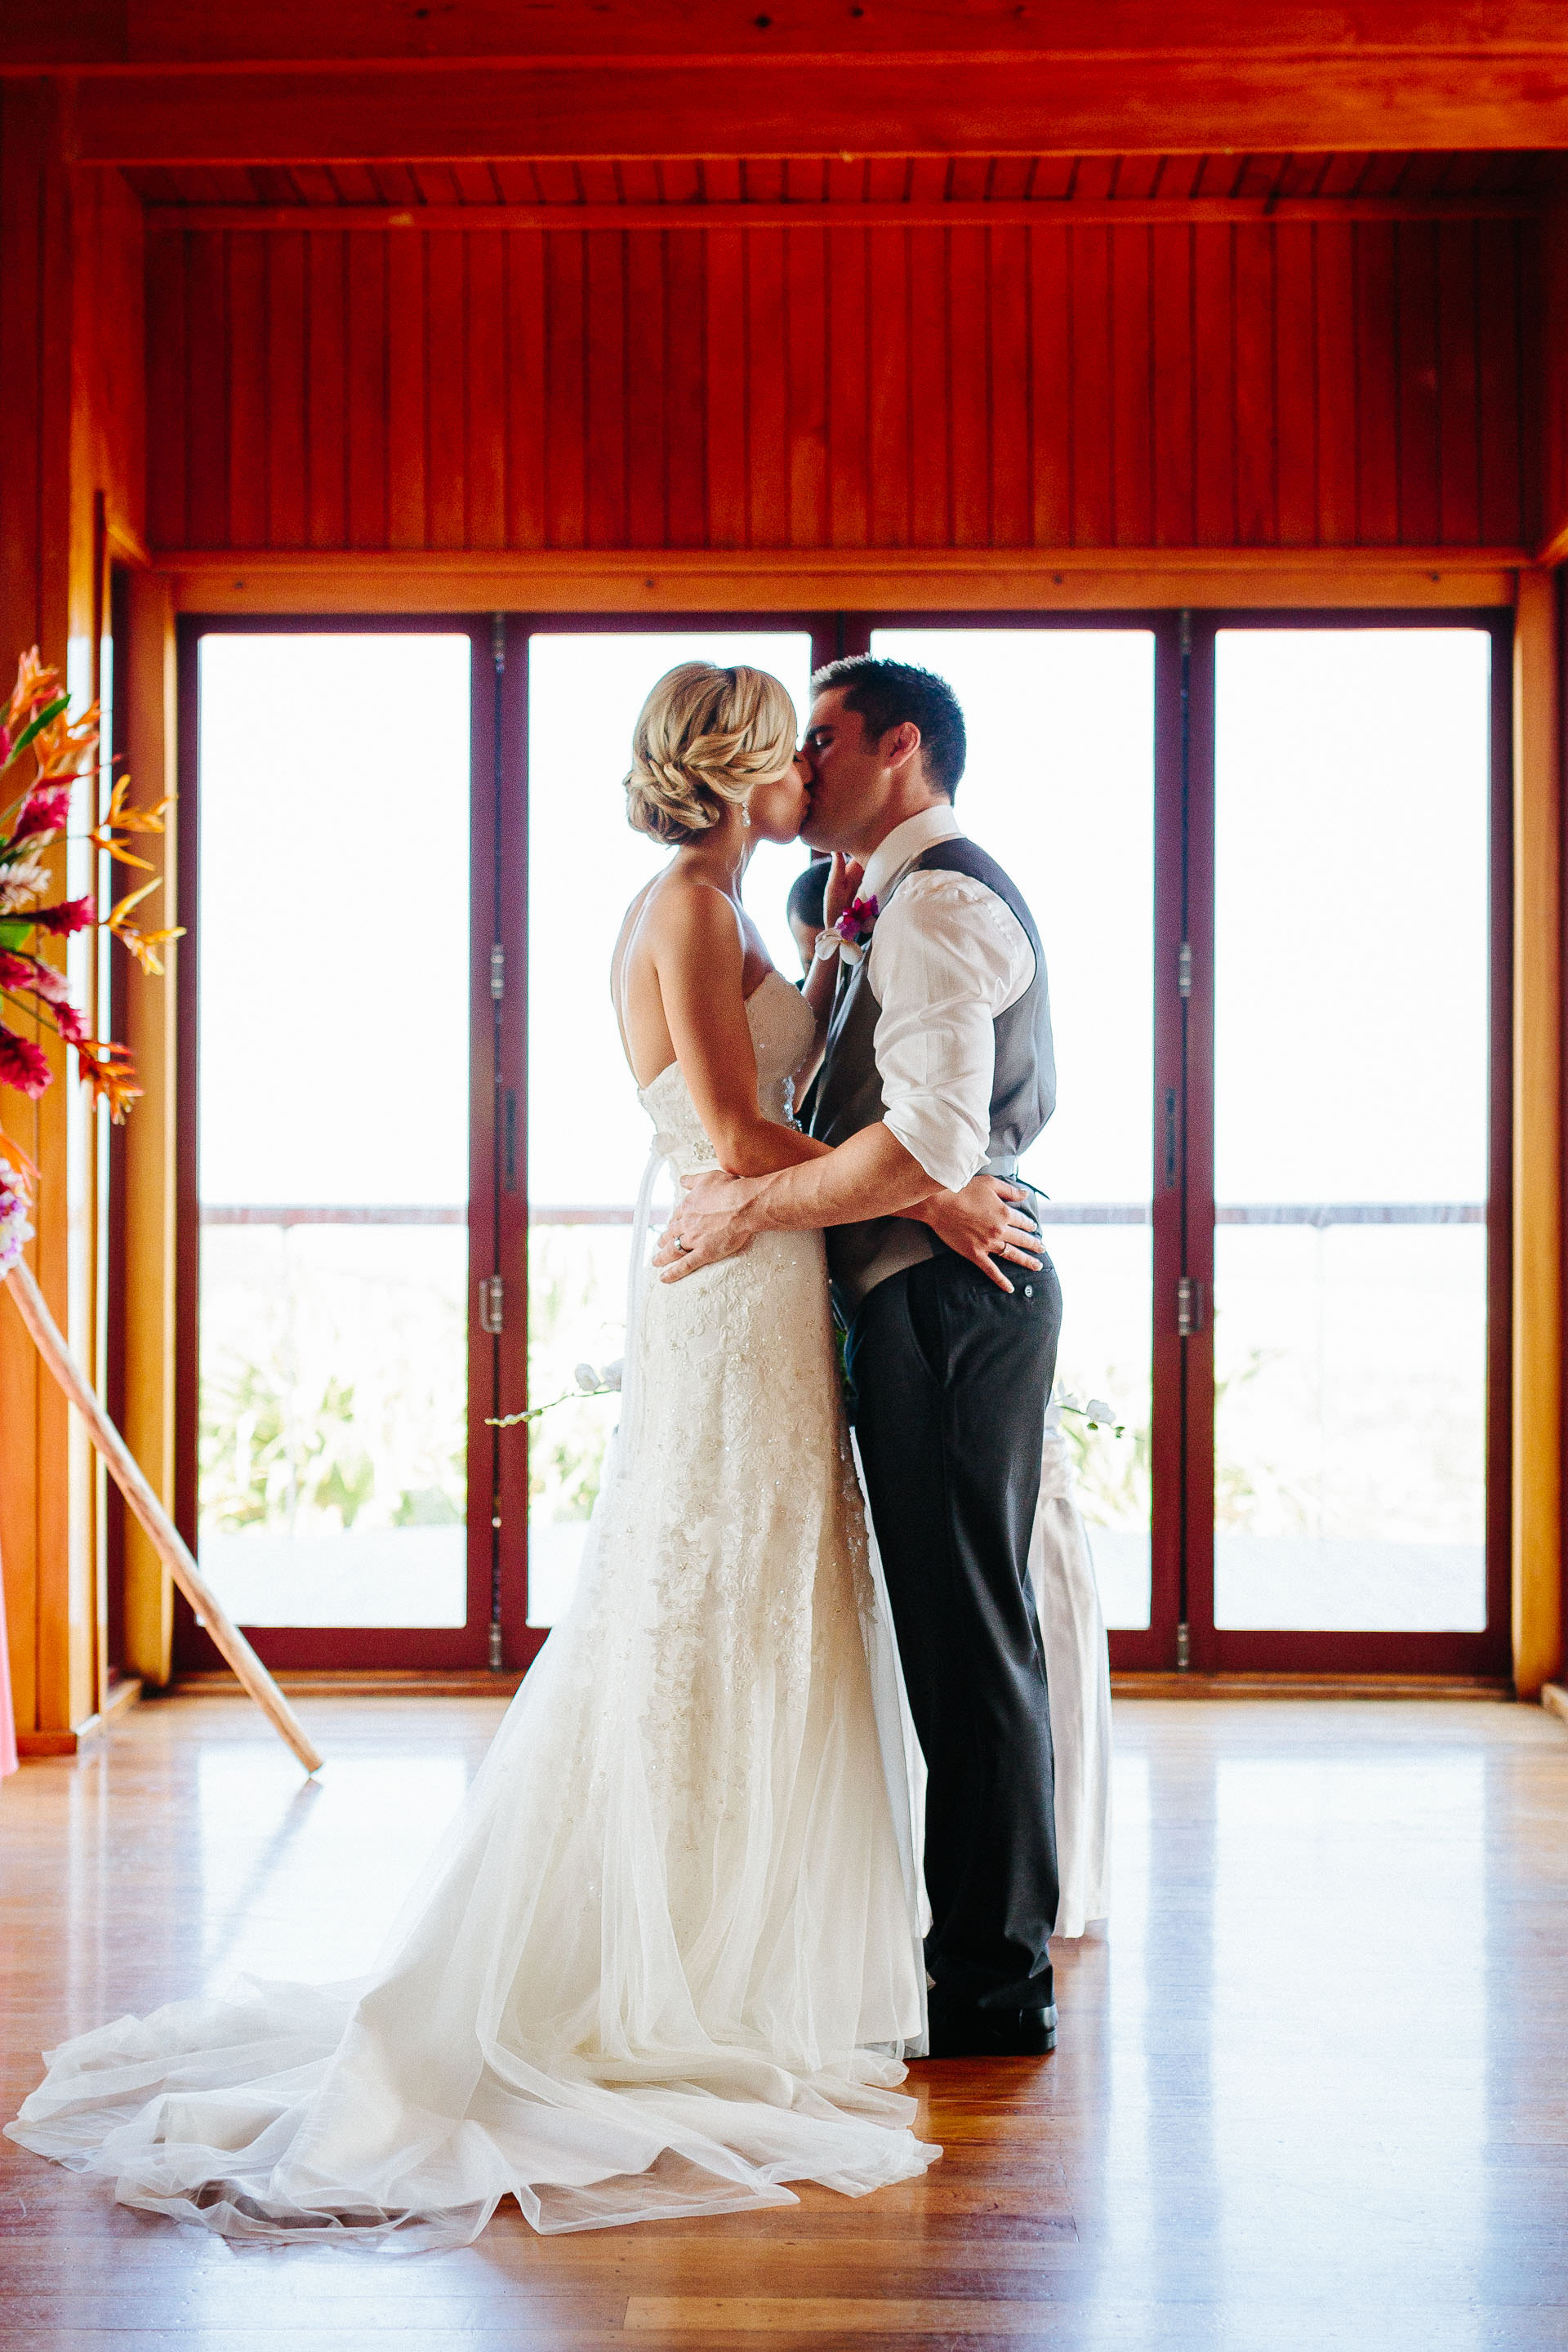 First kiss for the couple married in Fiji